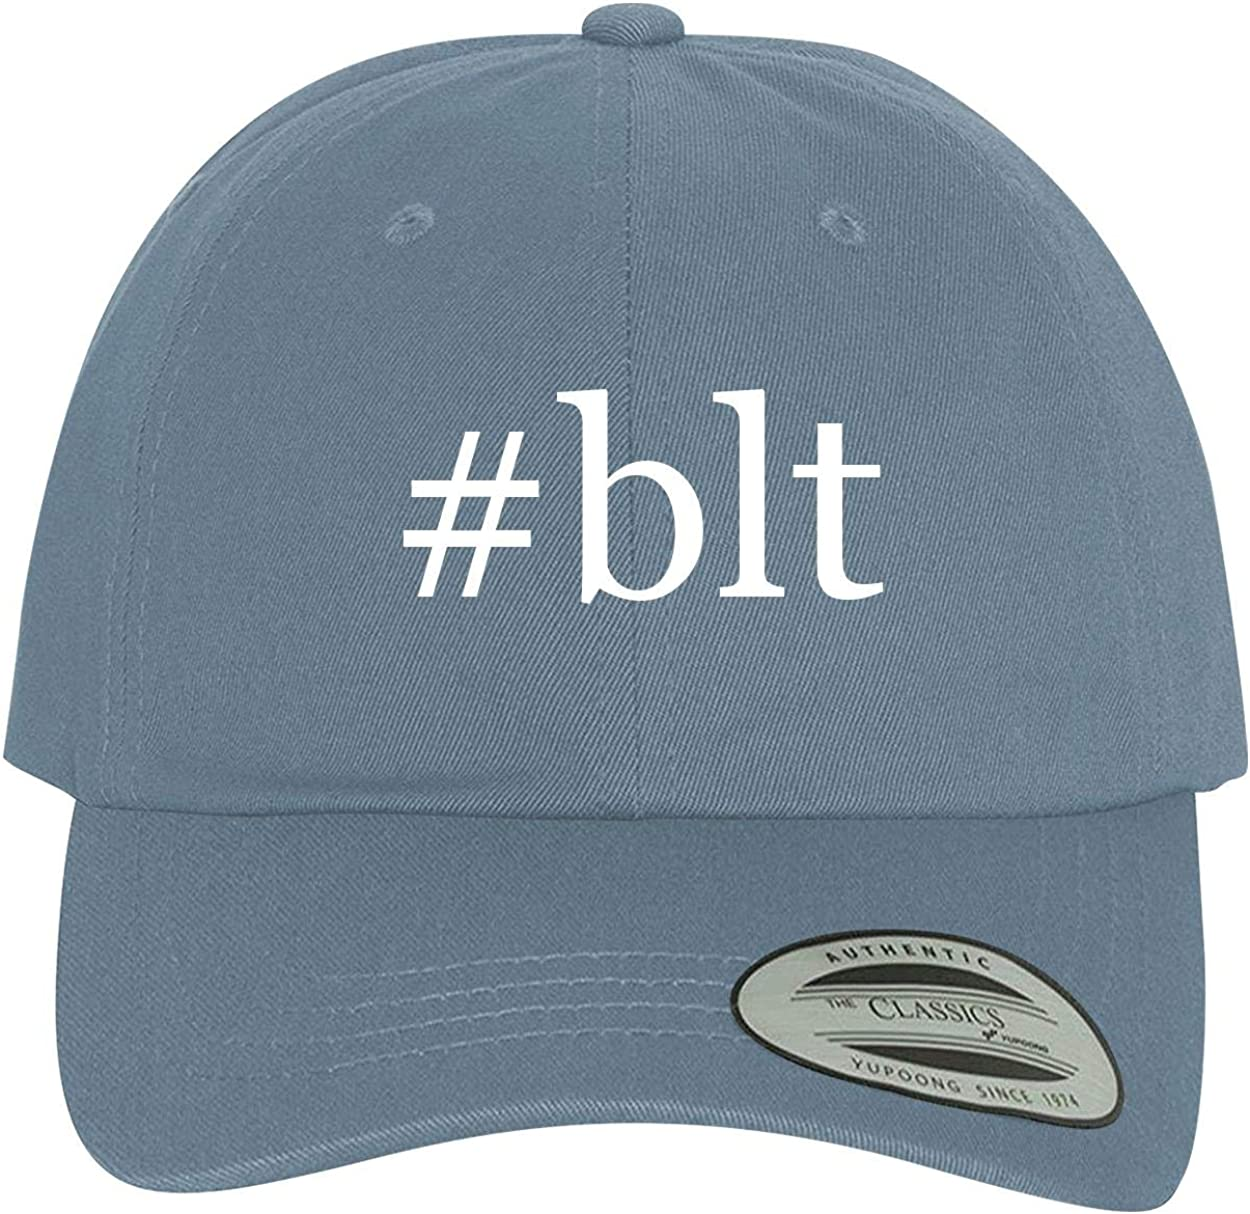 BH Cool Designs #BLT Comfortable Dad Hat Baseball Cap